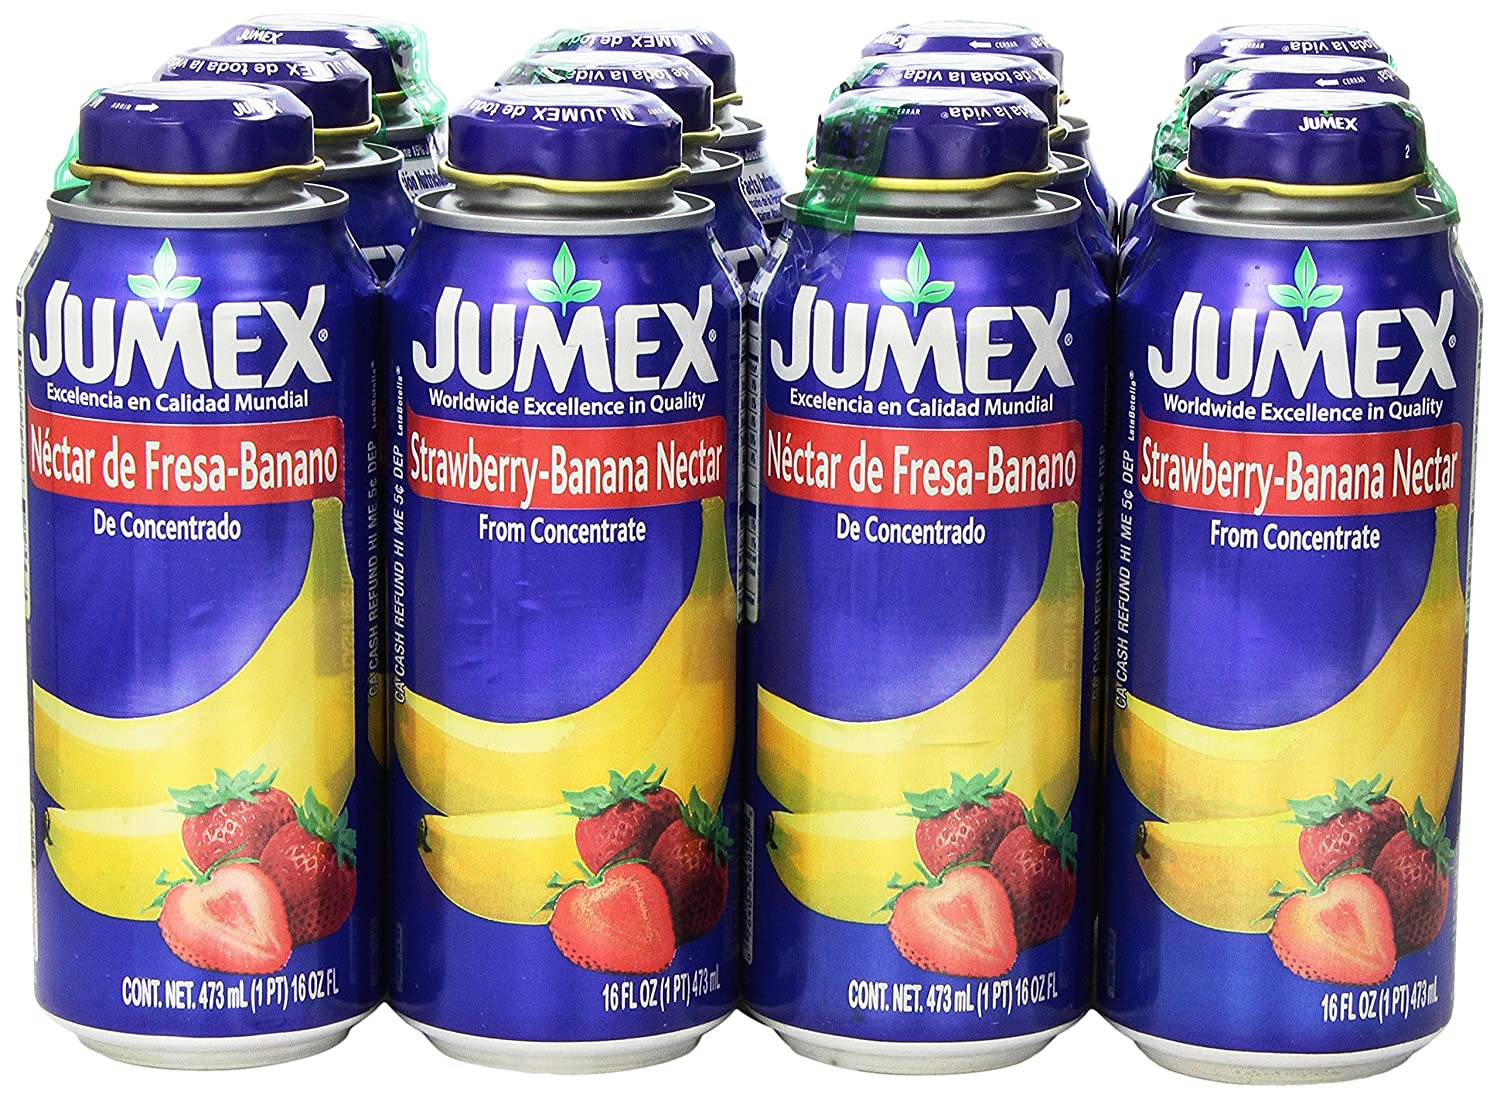 Jumex | www.pixshark.com - Images Galleries With A Bite!